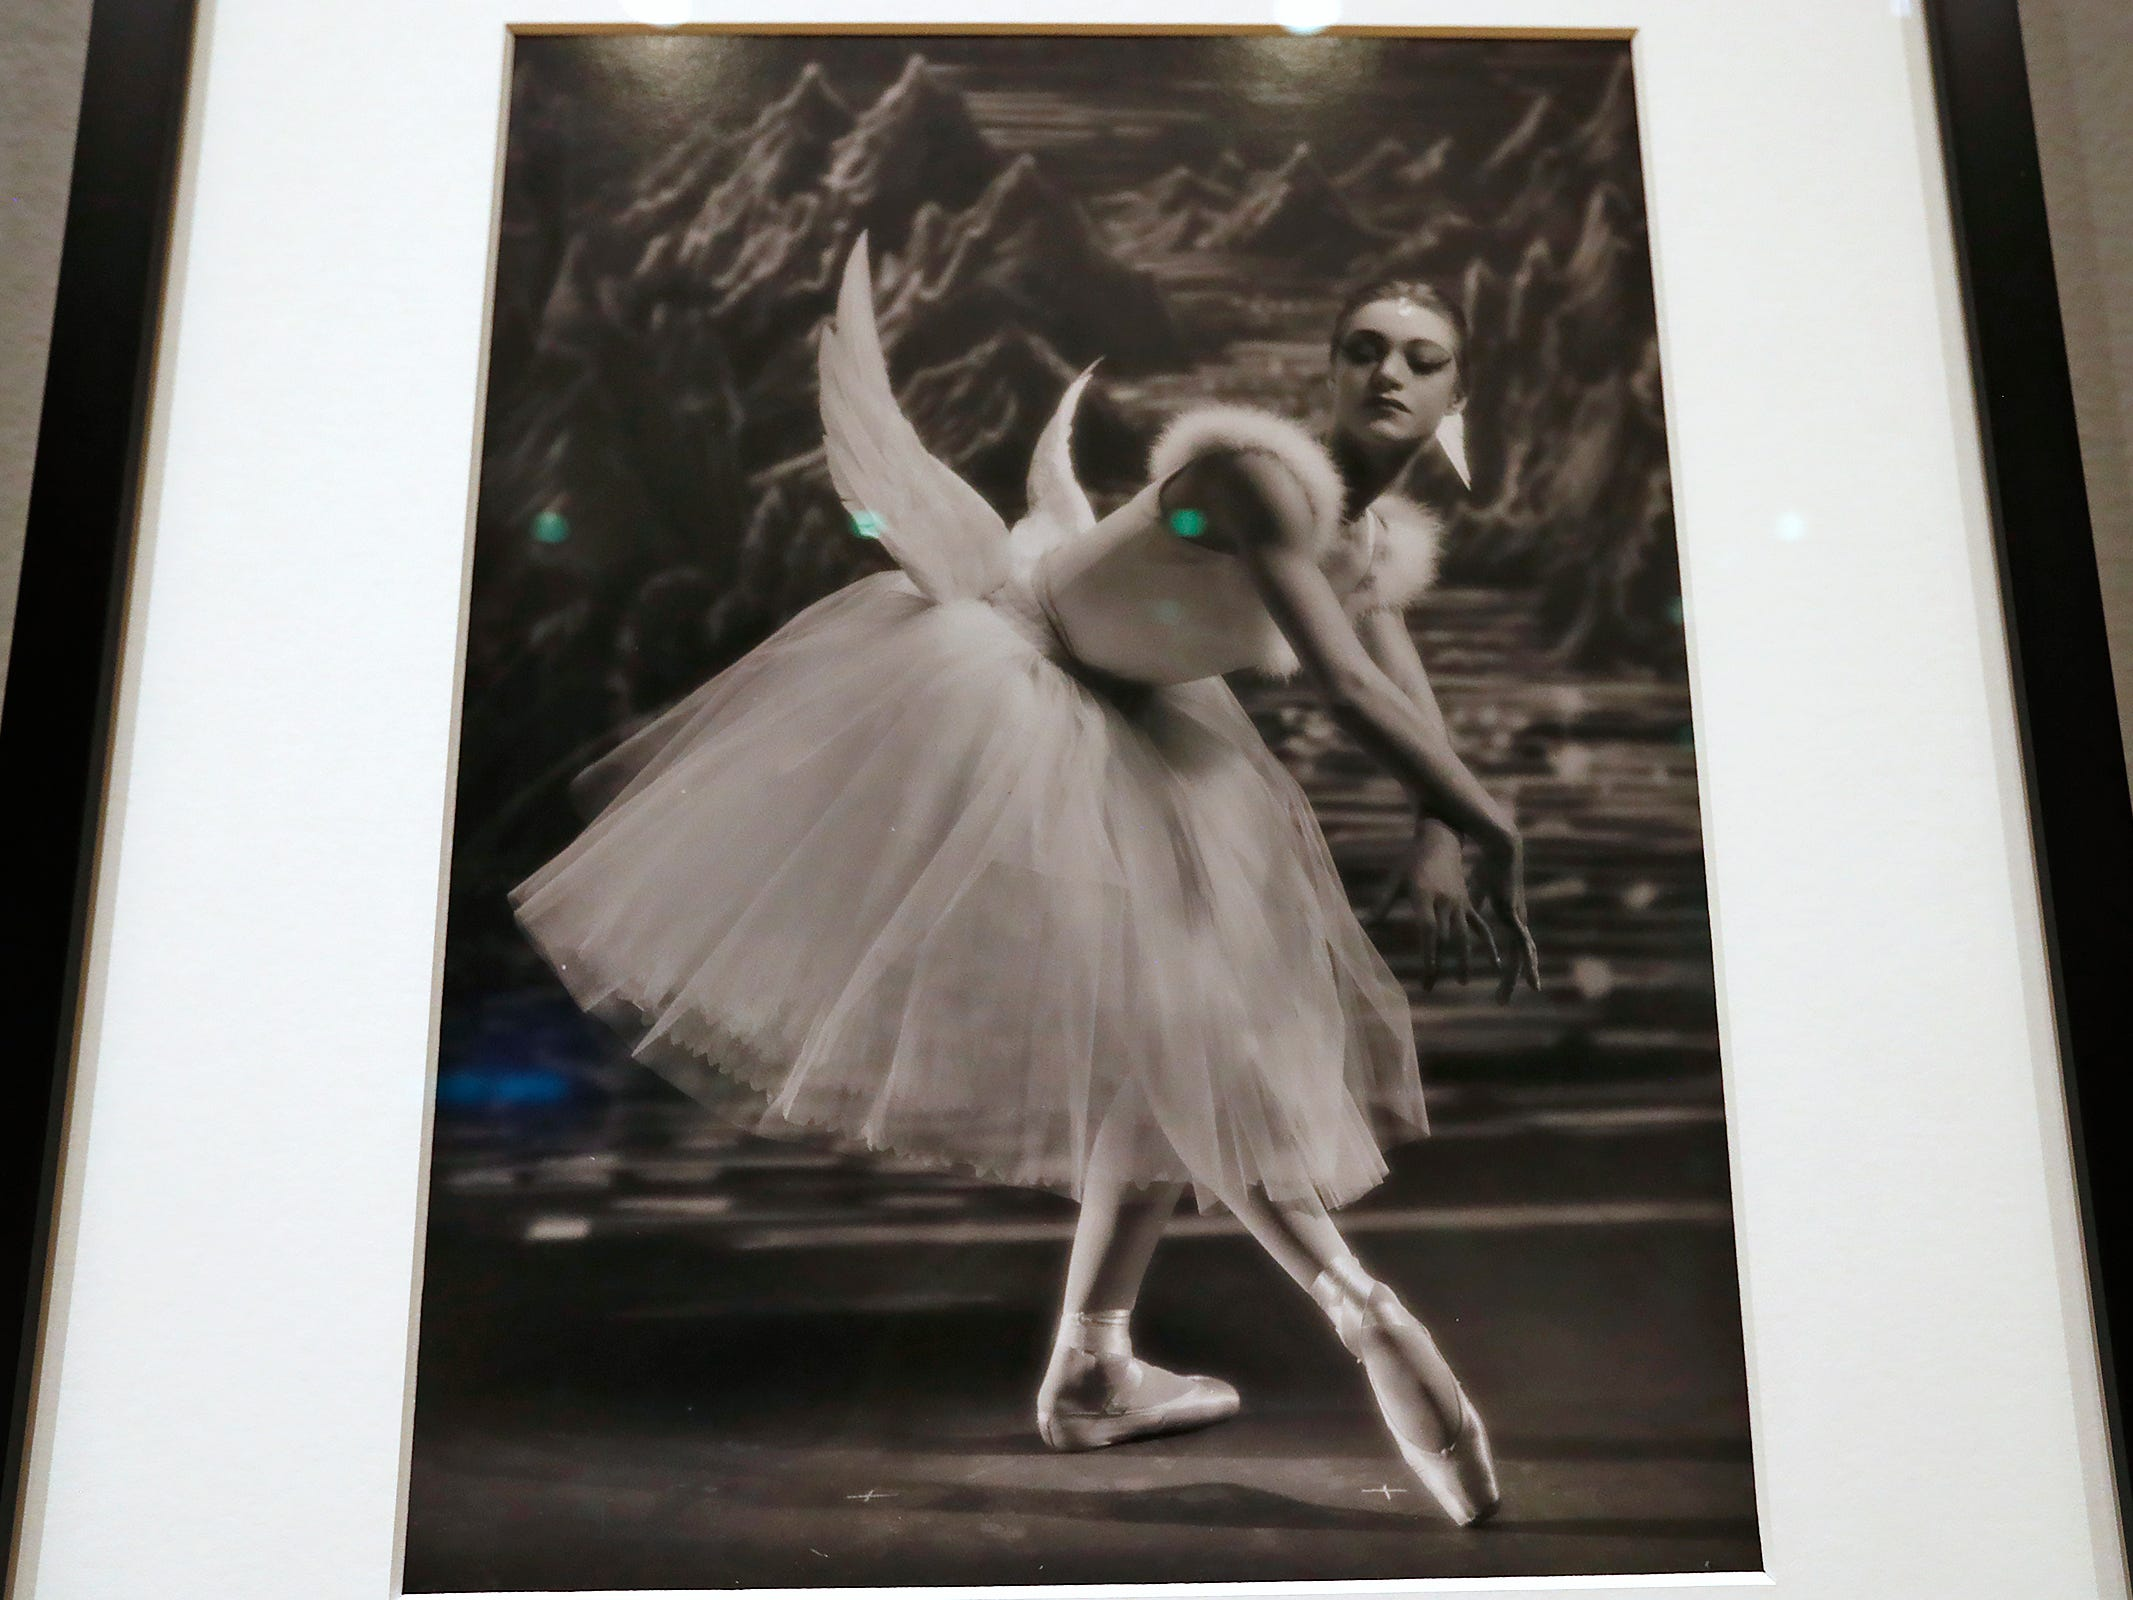 This 1951 gelatin silver print, Patricia Wilde portrait by George Platt Lynes, from the Collections of the Kinsey Institute, Indiana University, is seen at the George Platt Lynes exhibit at Newfields, Wednesday, Sept. 26, 2018.  Lynes gained fame as a commercial and ballet photogrqapher in the 1930s and 1940s, but he wanted to be known for the male nudes he captured of the male ballet dancers and others.  The exhibit runs Sept. 30, 2018 through Feb. 24, 2019.